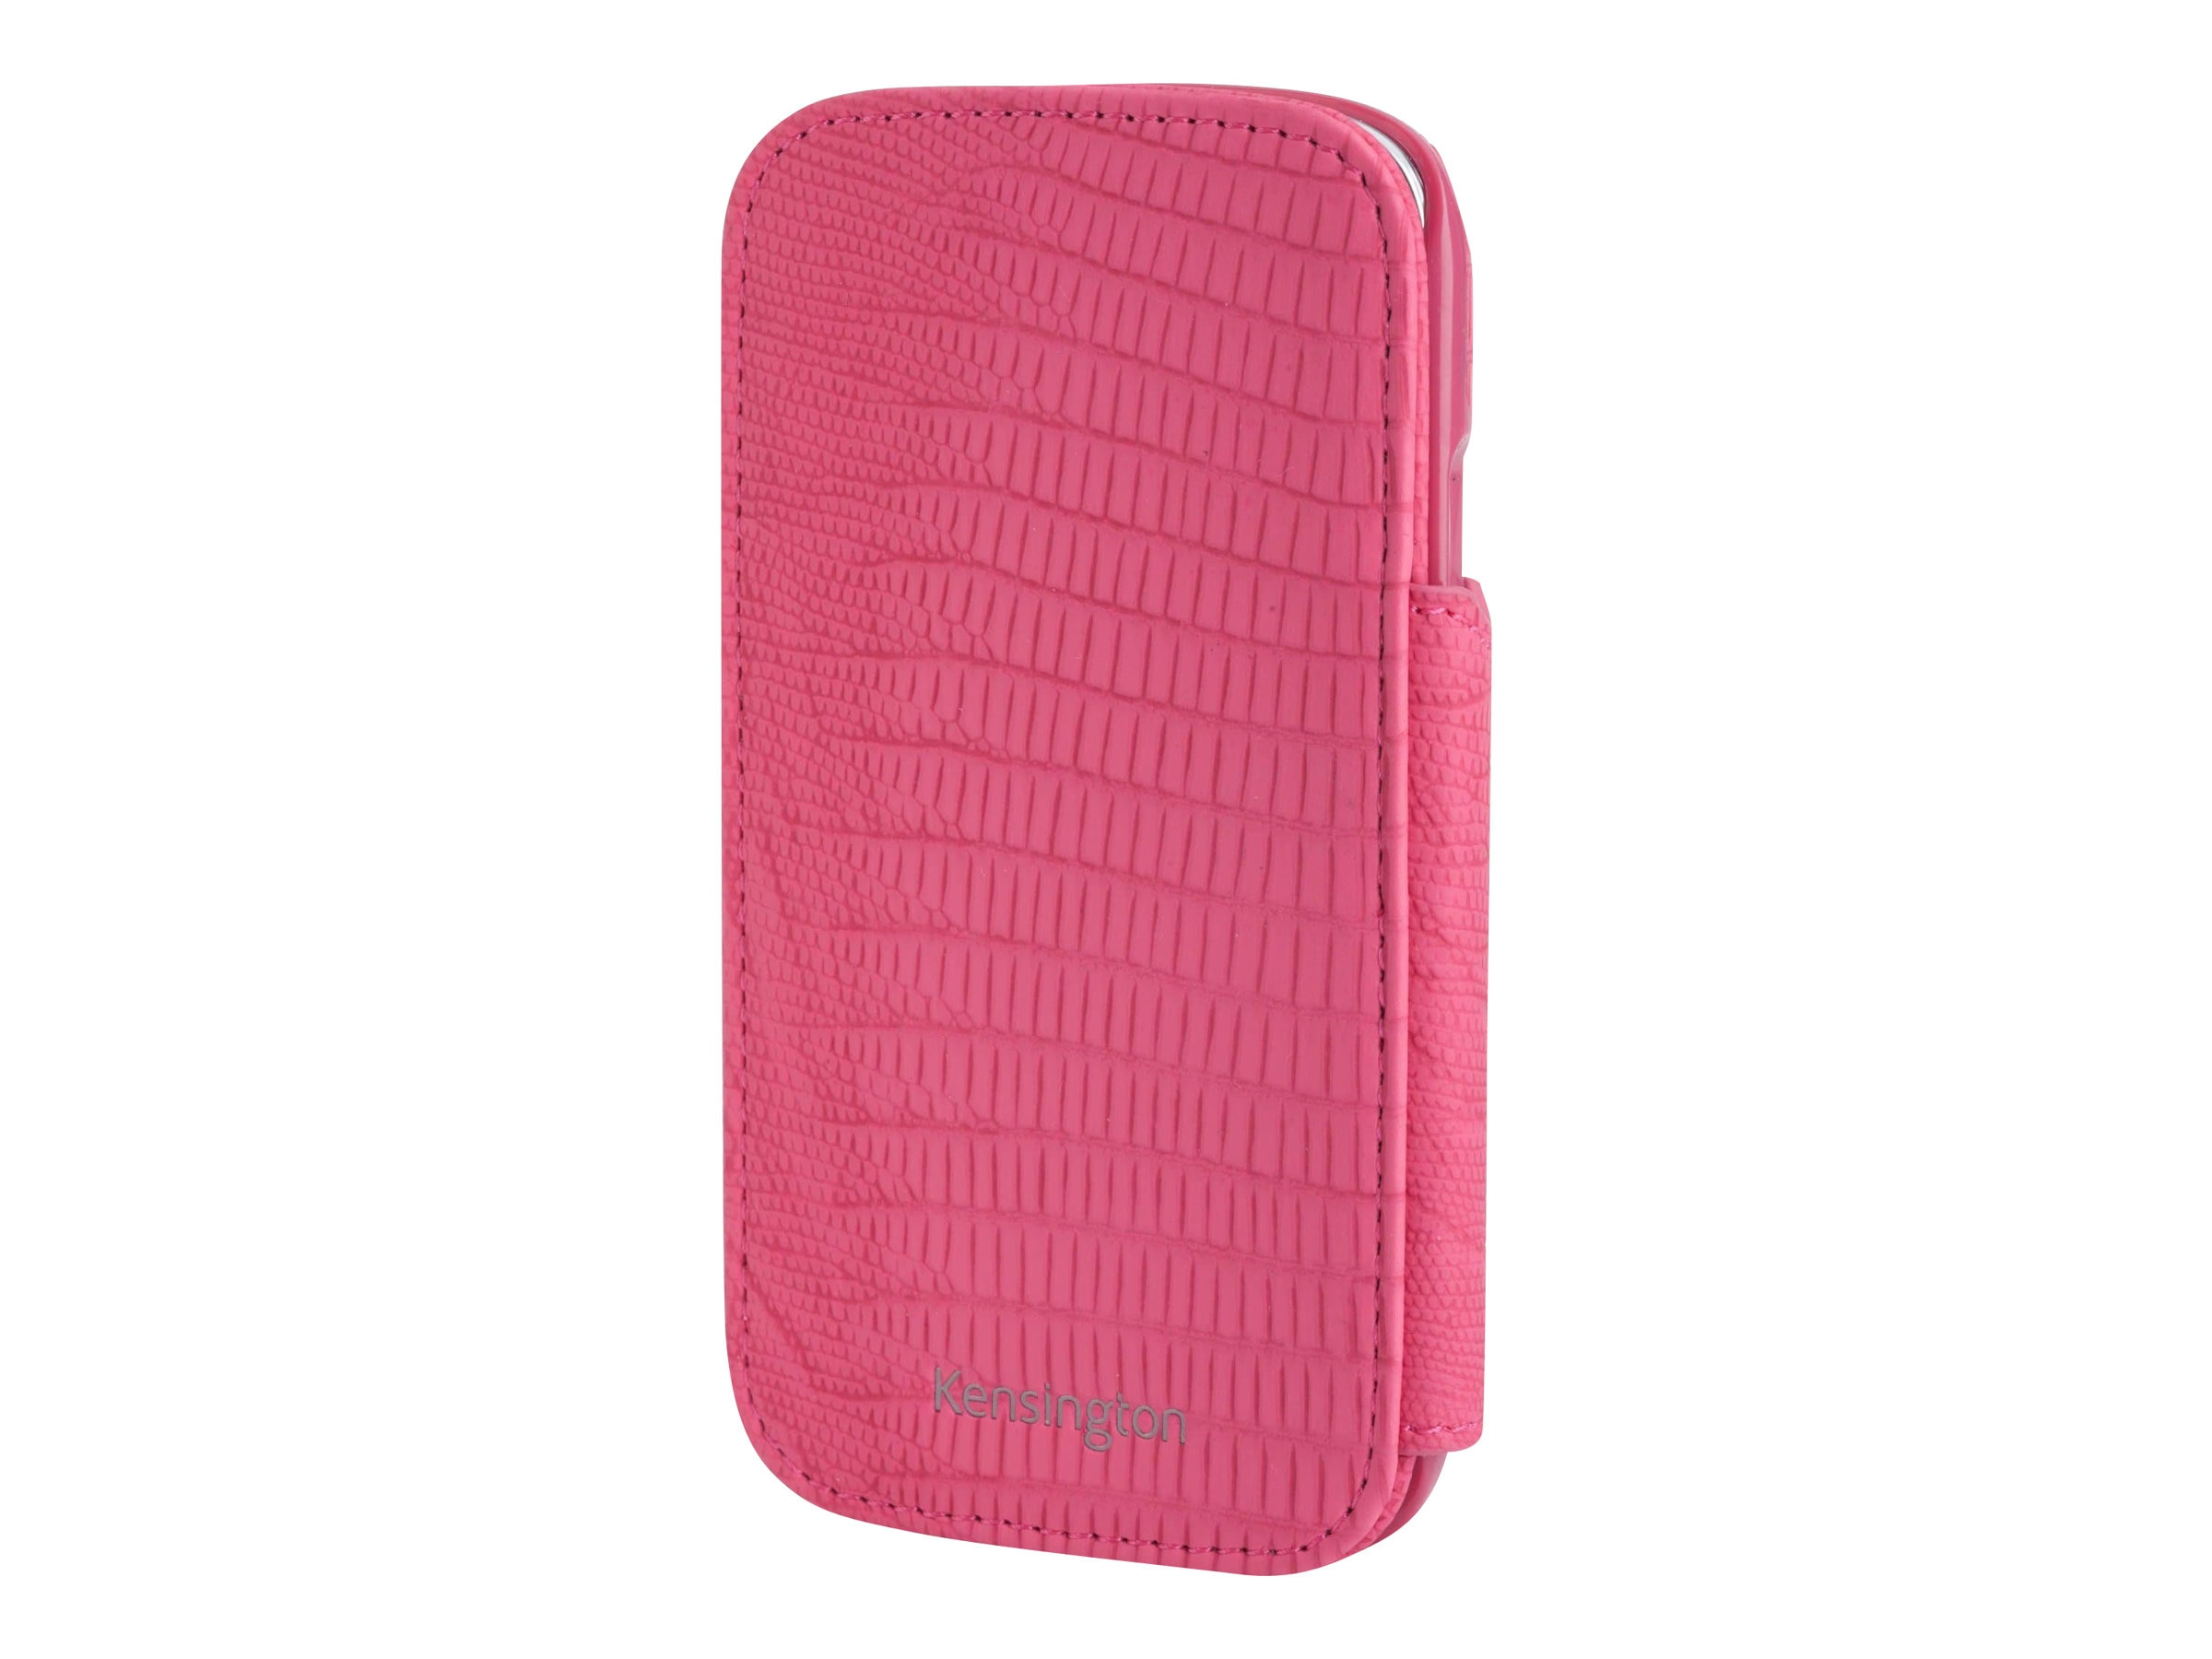 Kensington Portafolio Duo Wallet for Samsung Galaxy S III, Pink